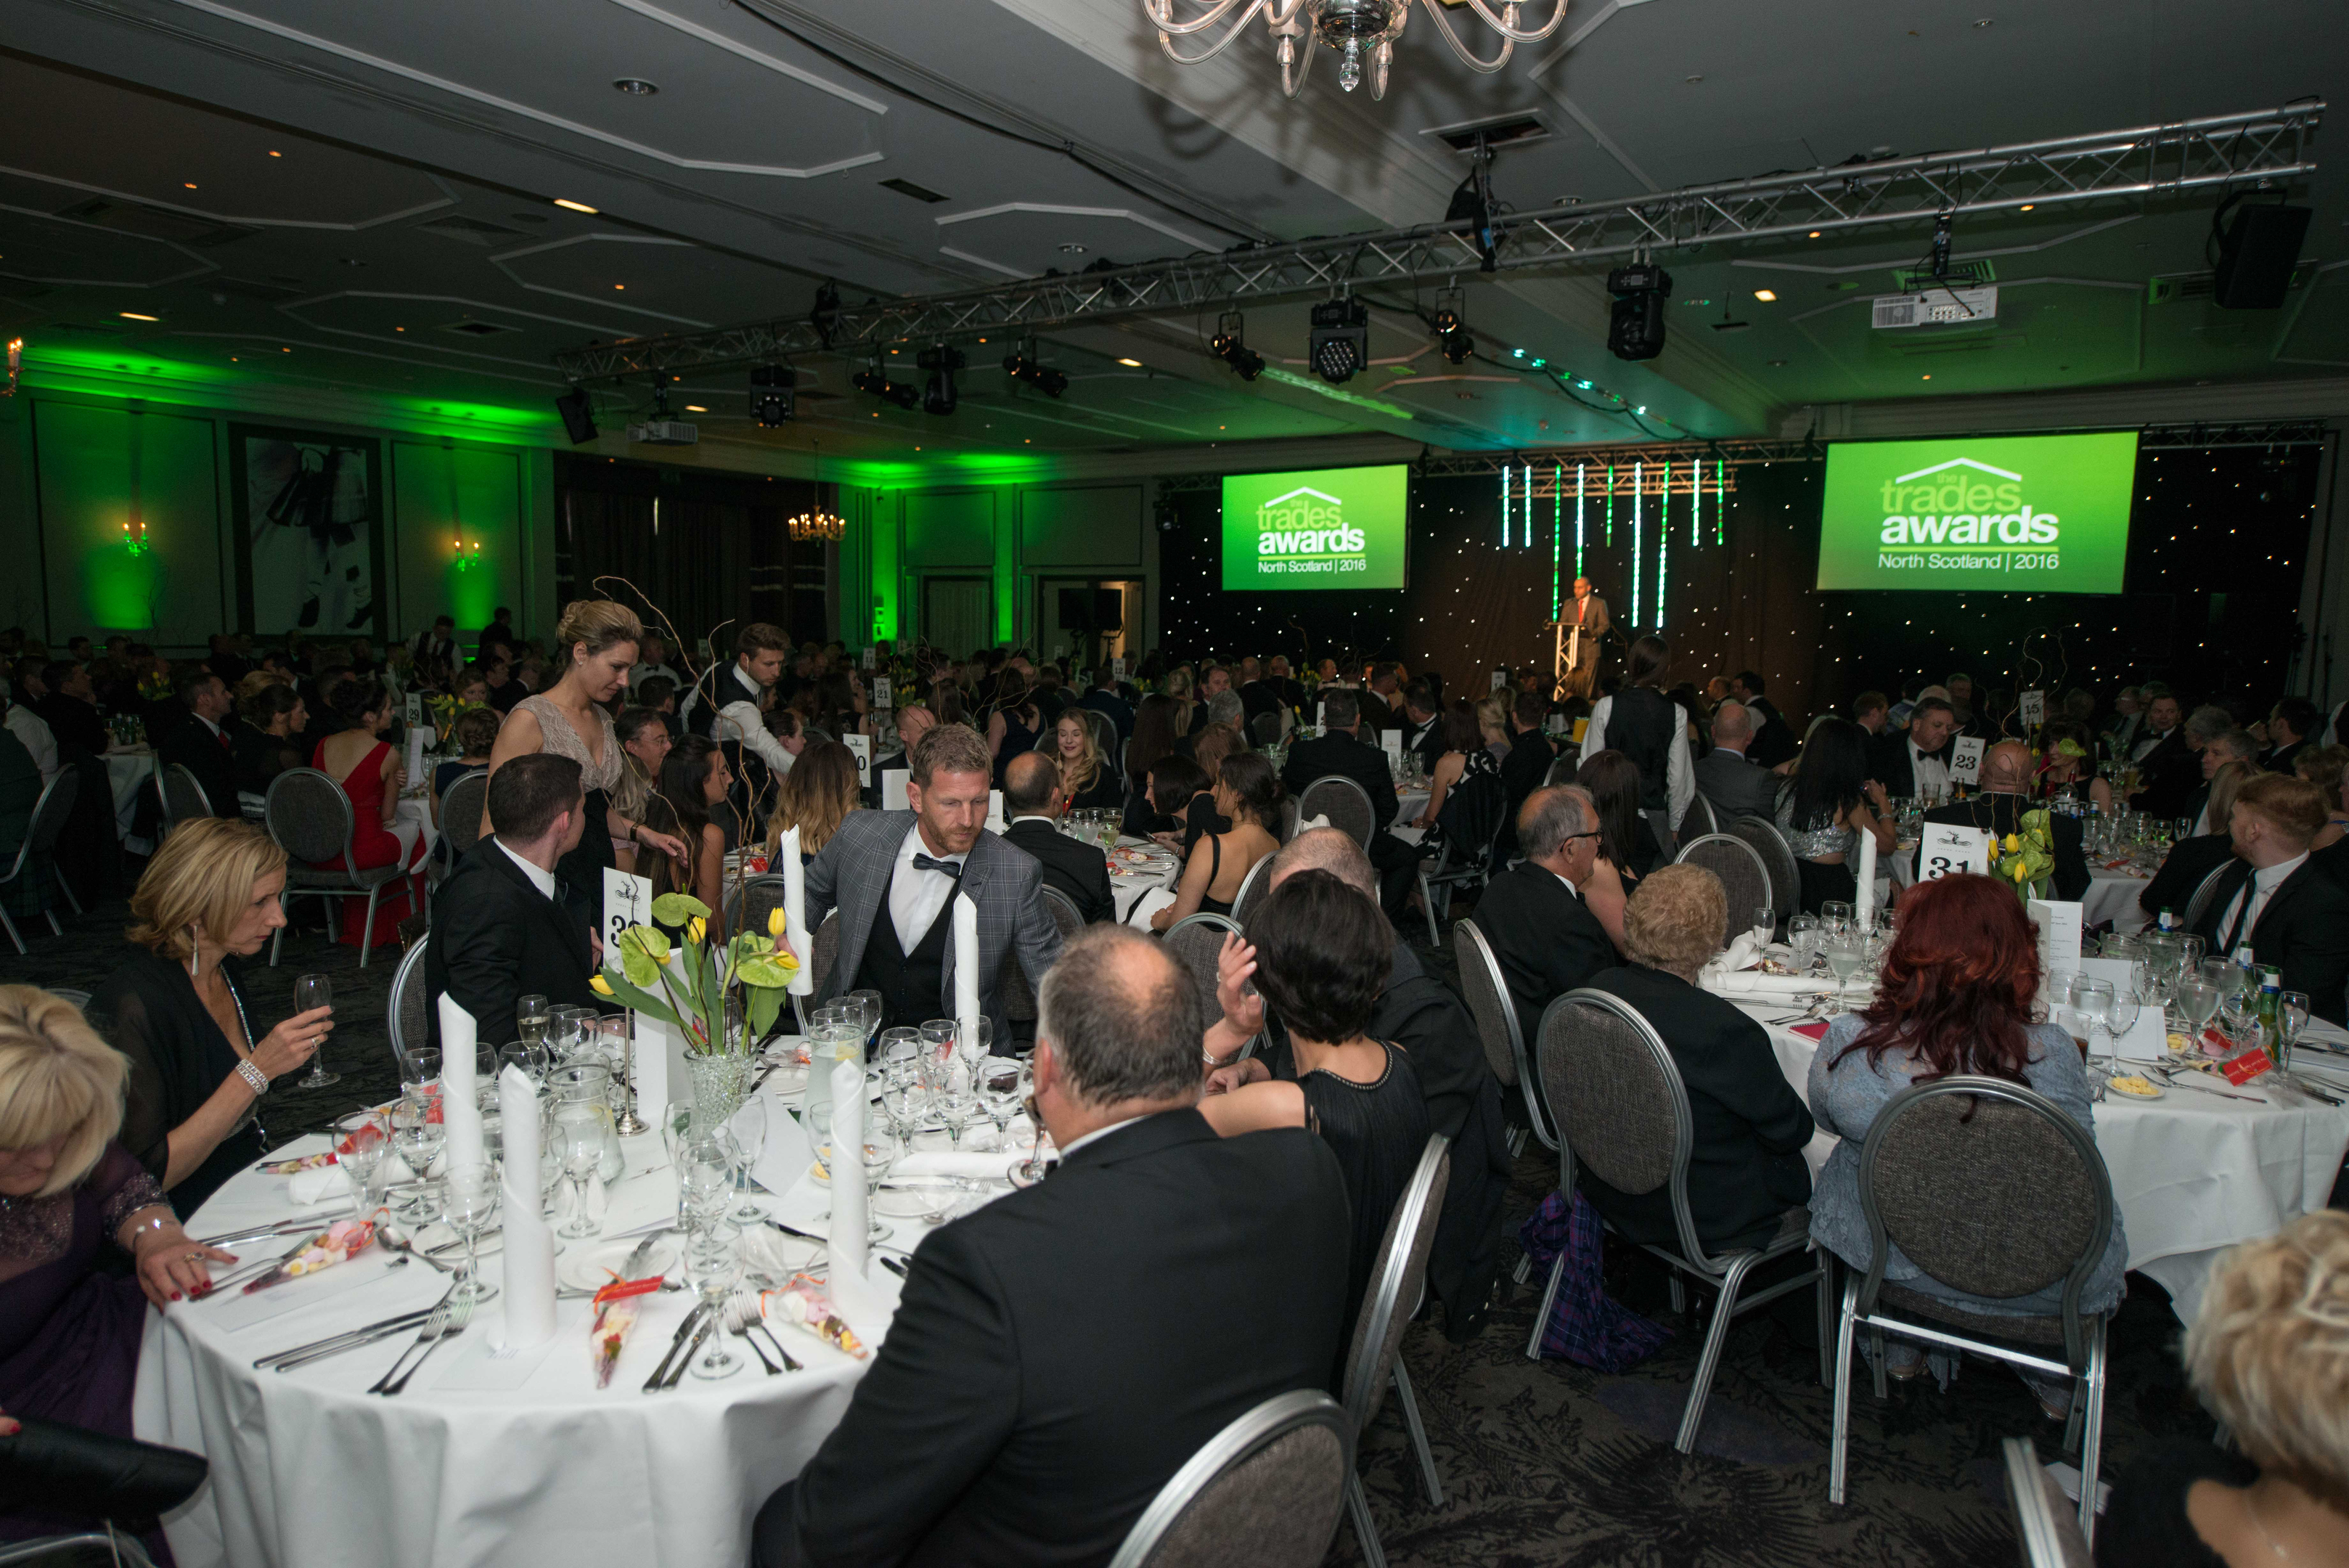 Guests at last year's Trades Awards ceremony.